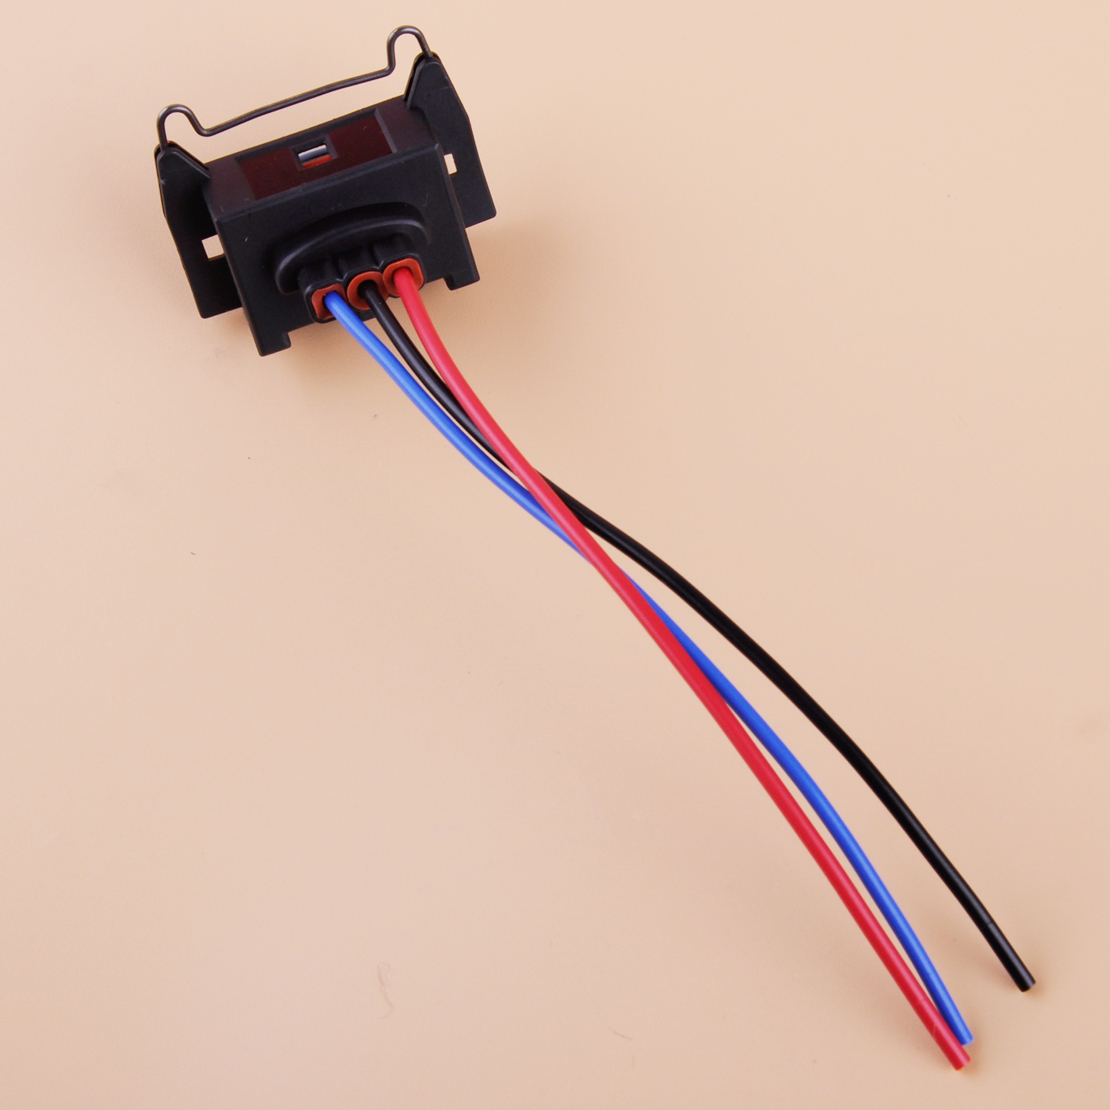 CITALL New Ignition Coil Pack Wiring Harness Connector 645 302 ... on